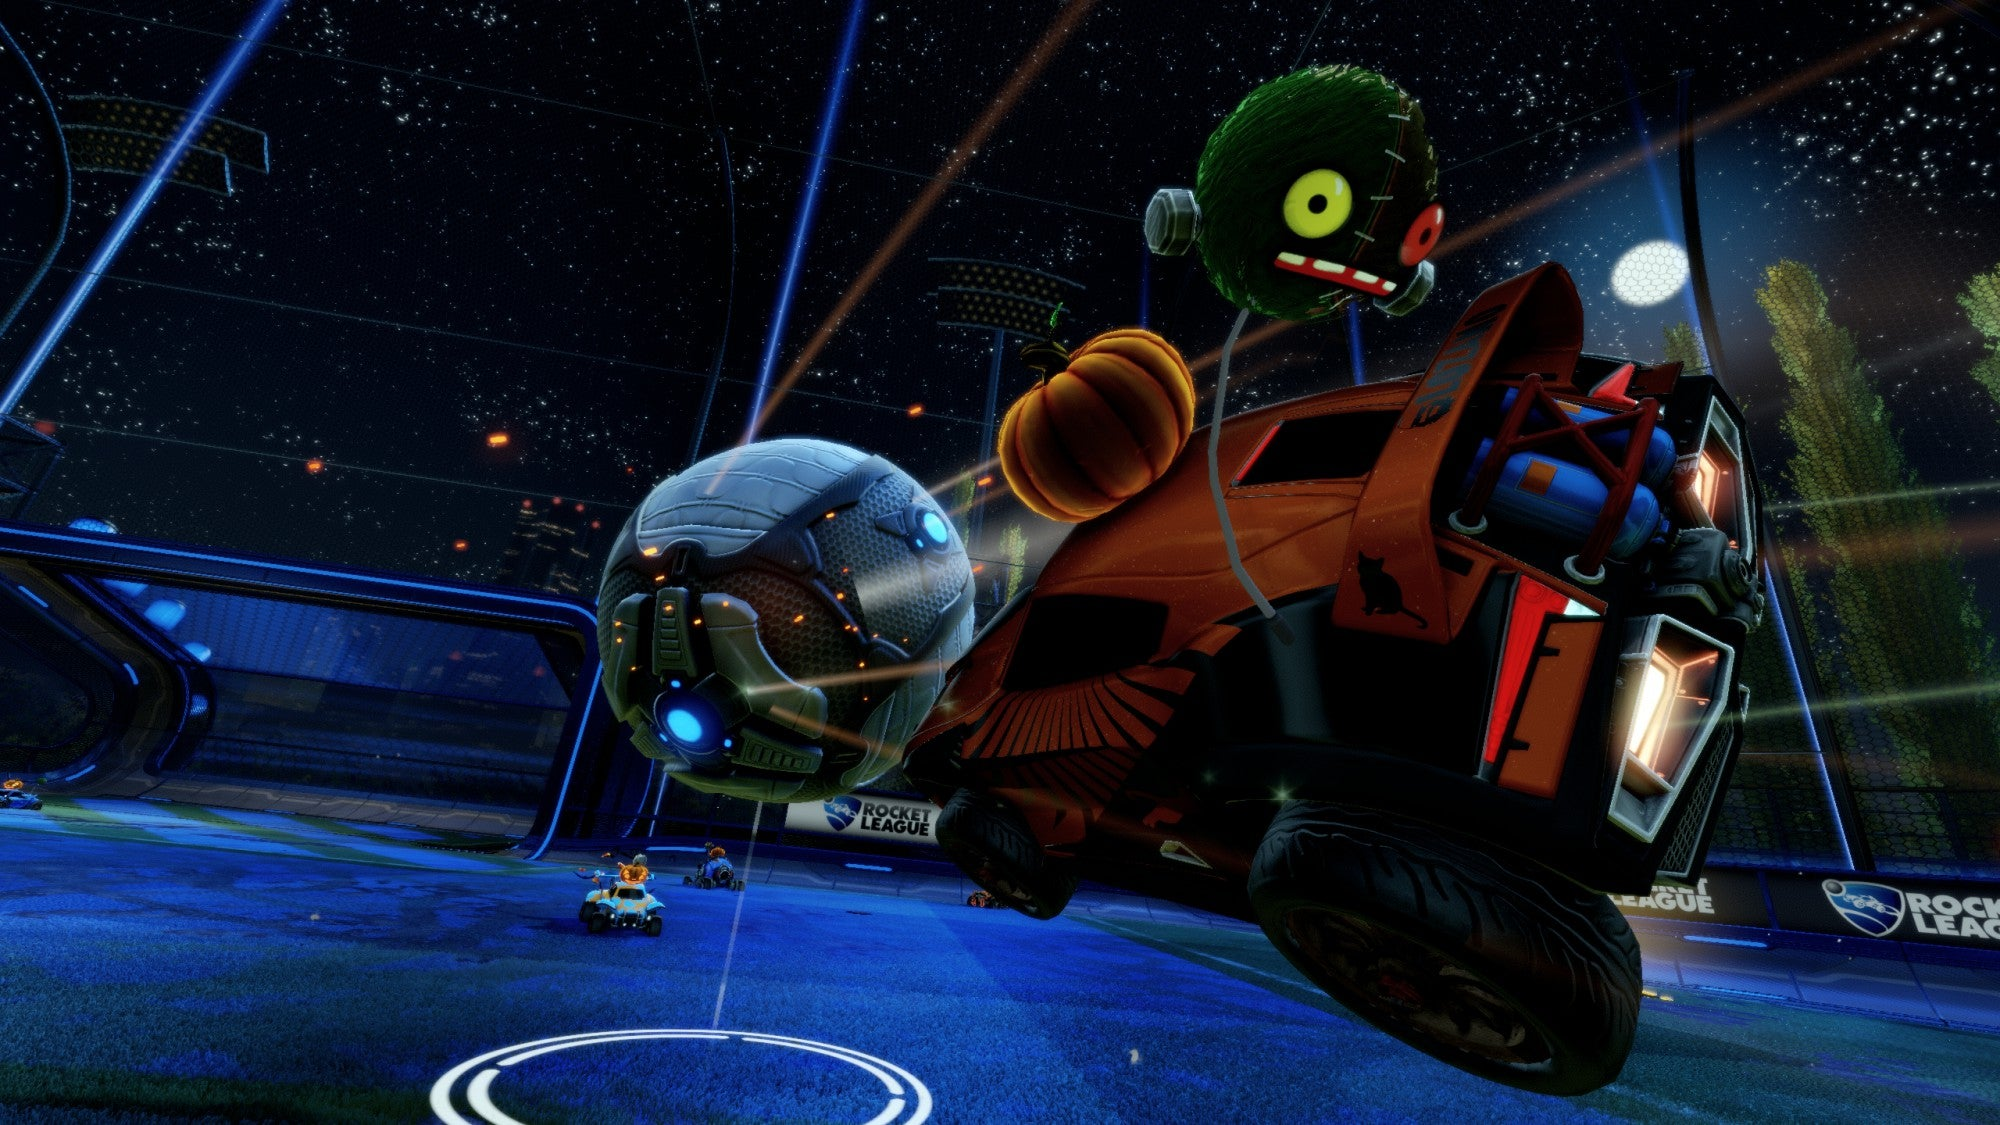 free halloween items coming to rocket league - Halloween Items